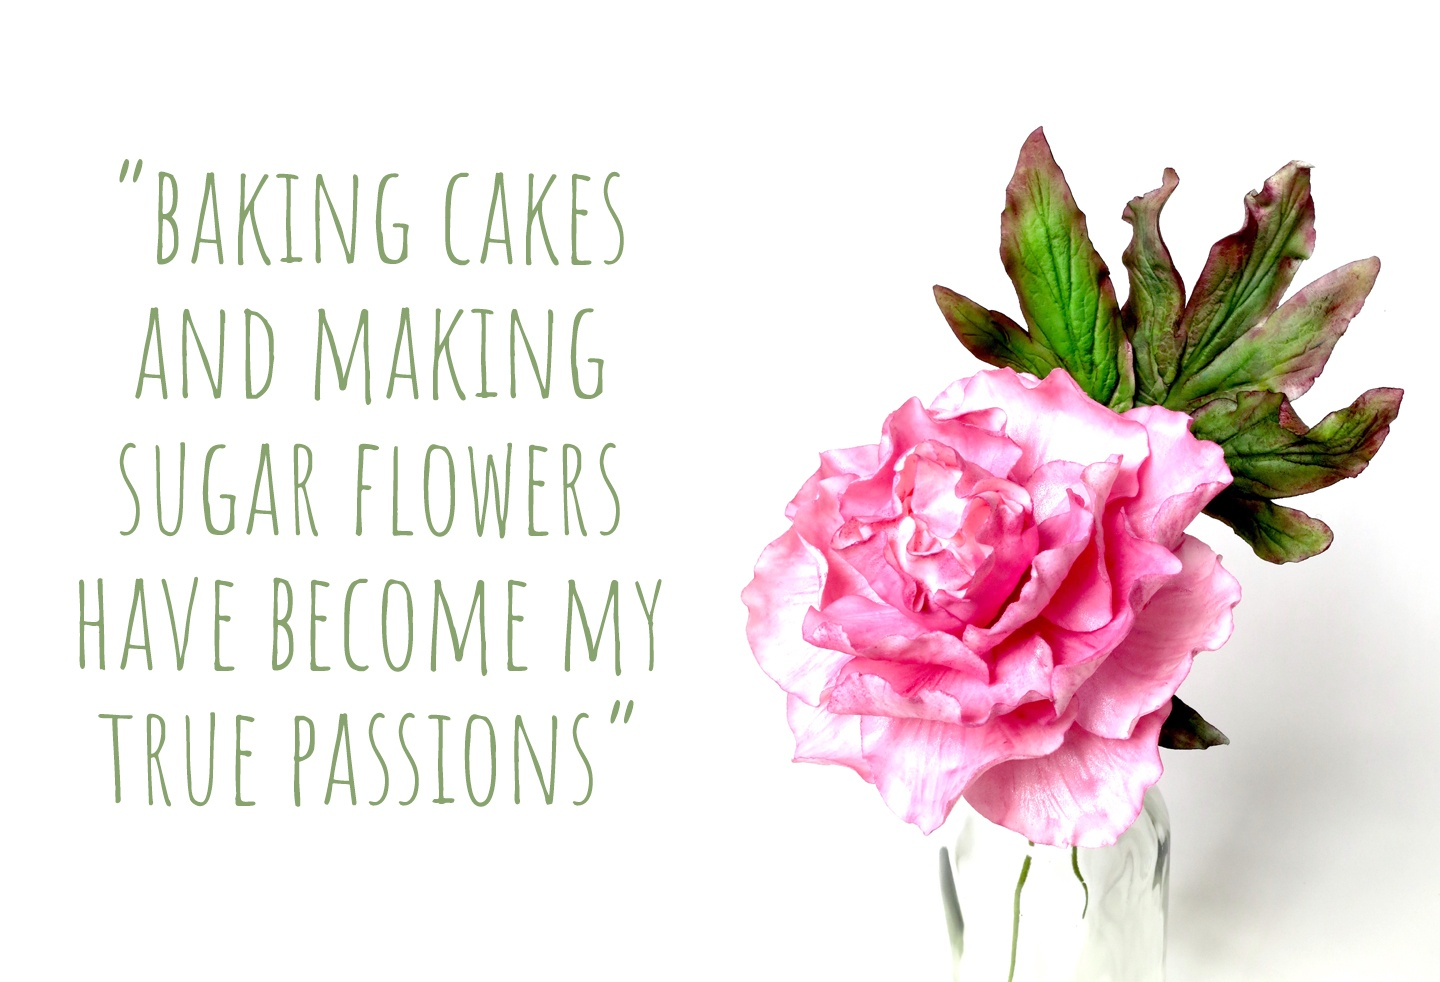 Early work by Marketa, a large pink sugar flower; 'baking cakes and making sugar flowers have become my true passions'